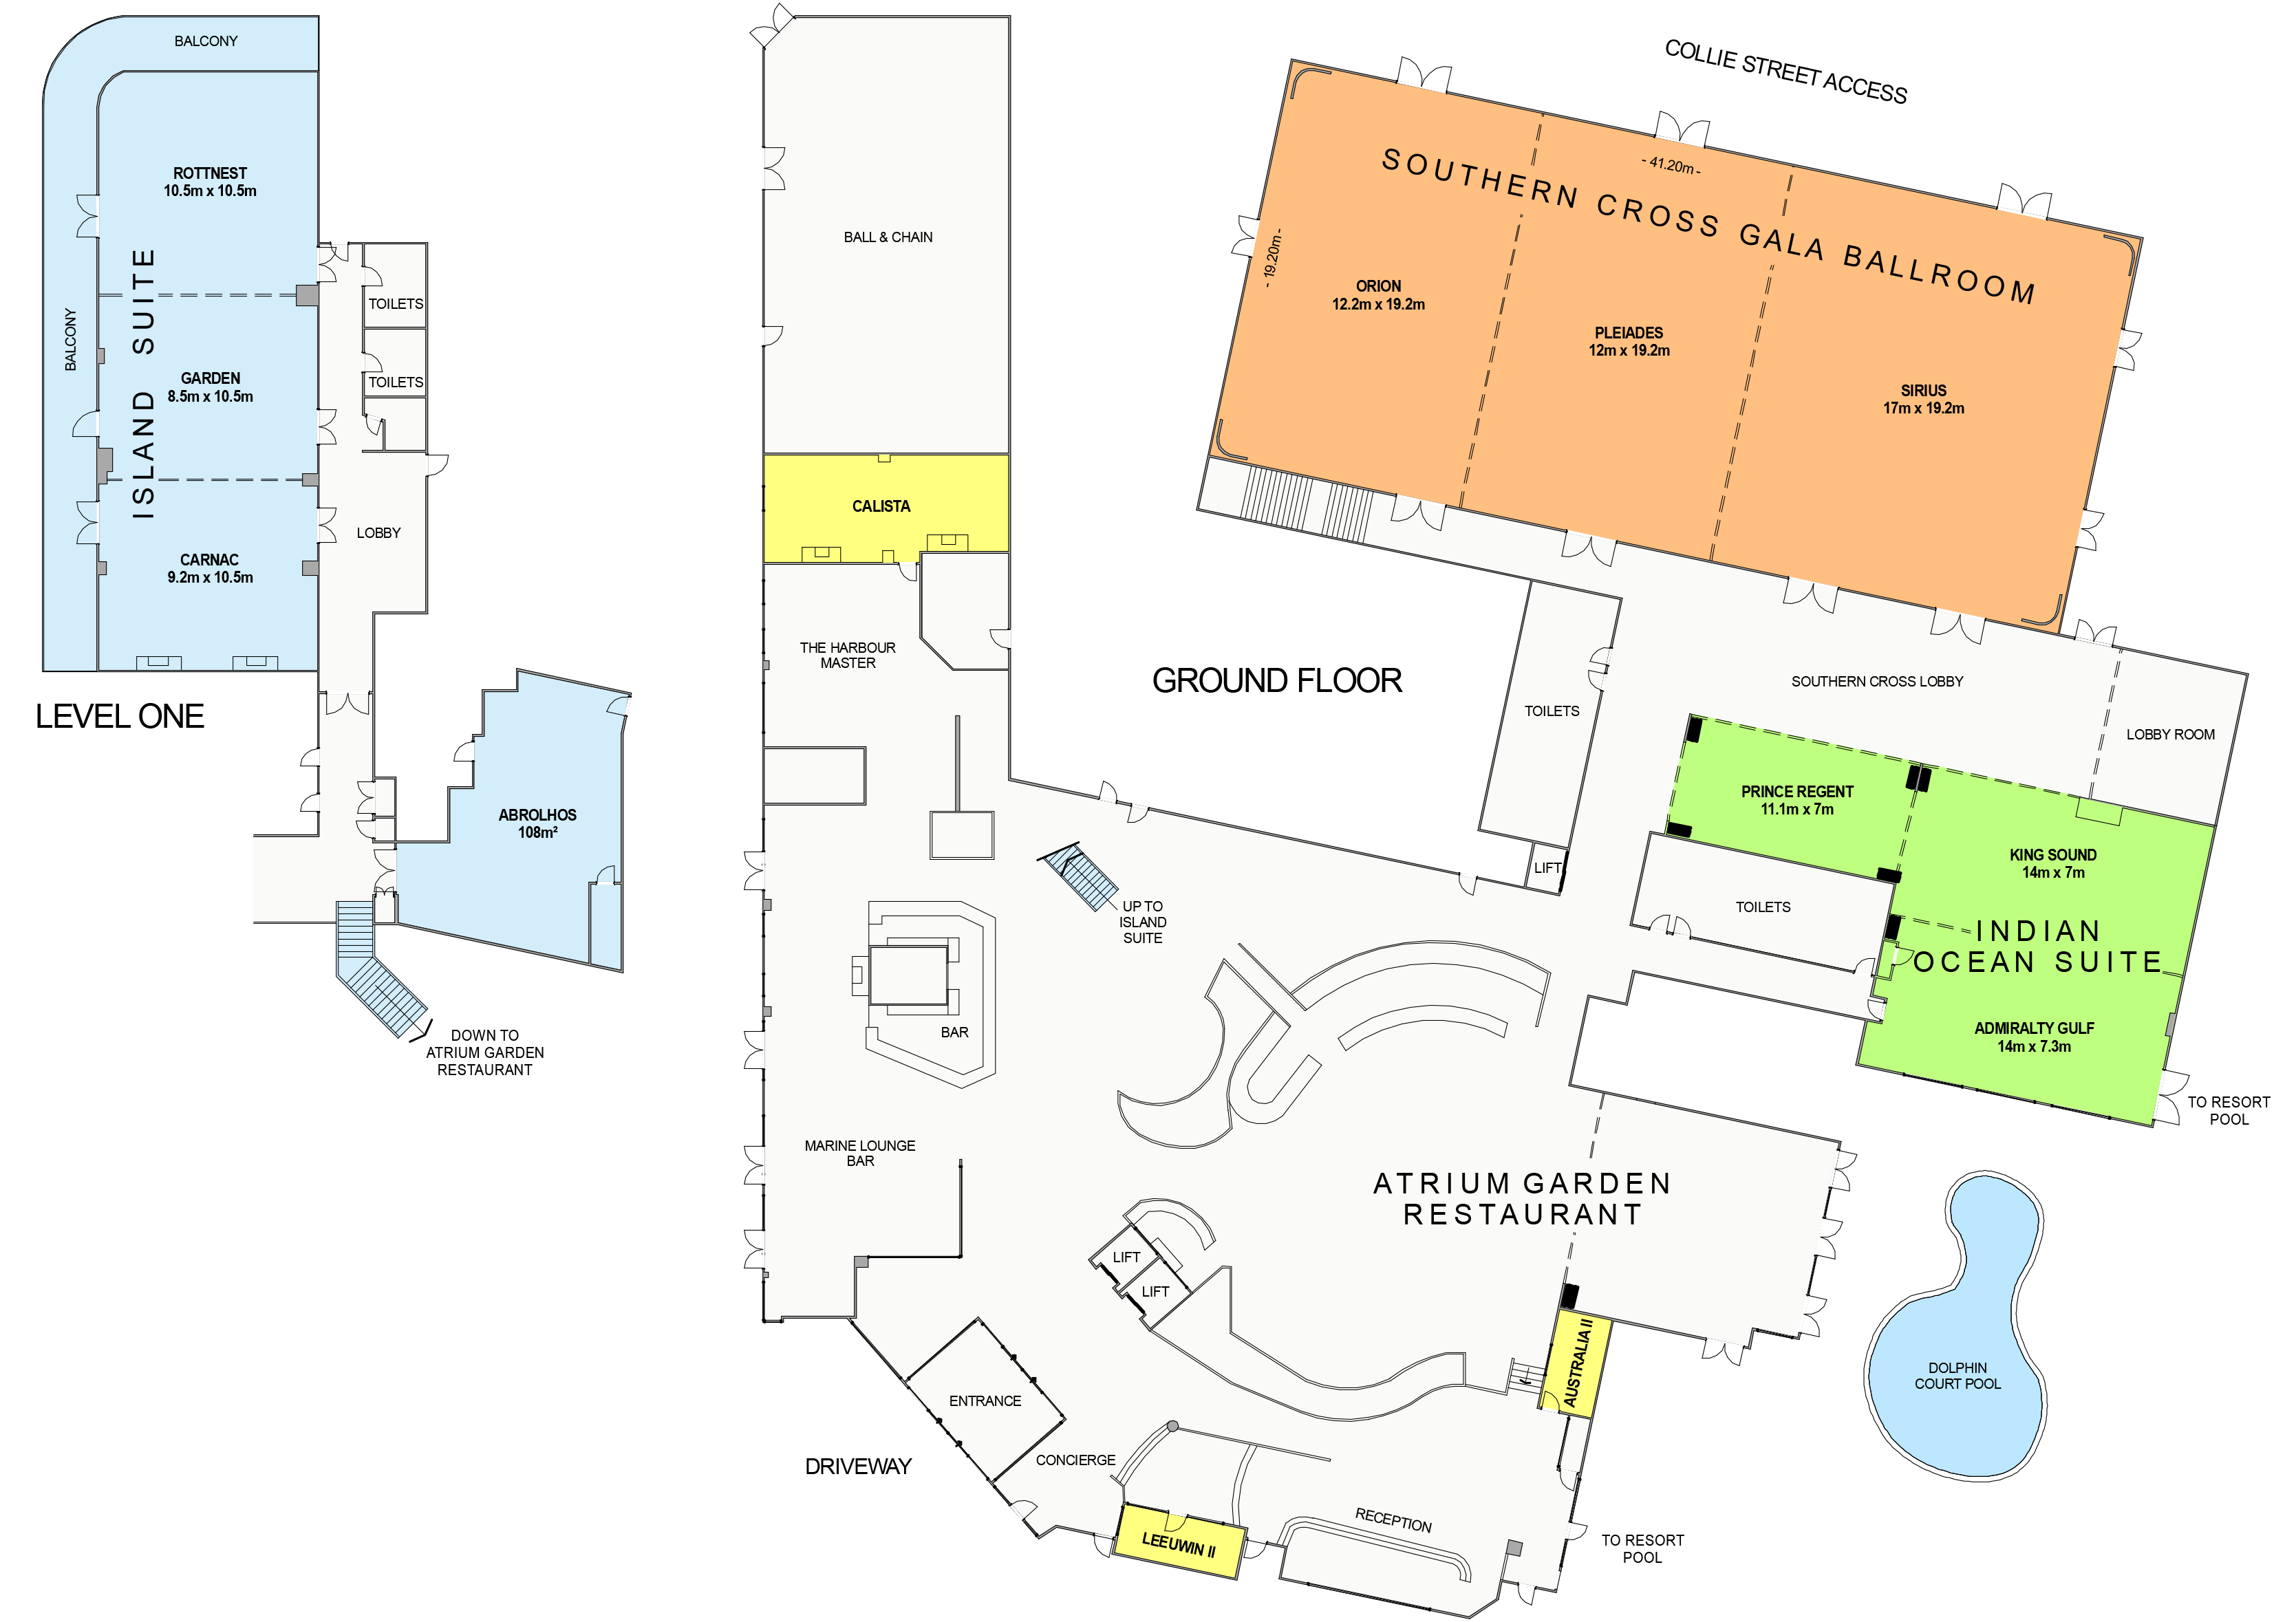 Esplanade Hotel Fremantle Venues Floor Plan